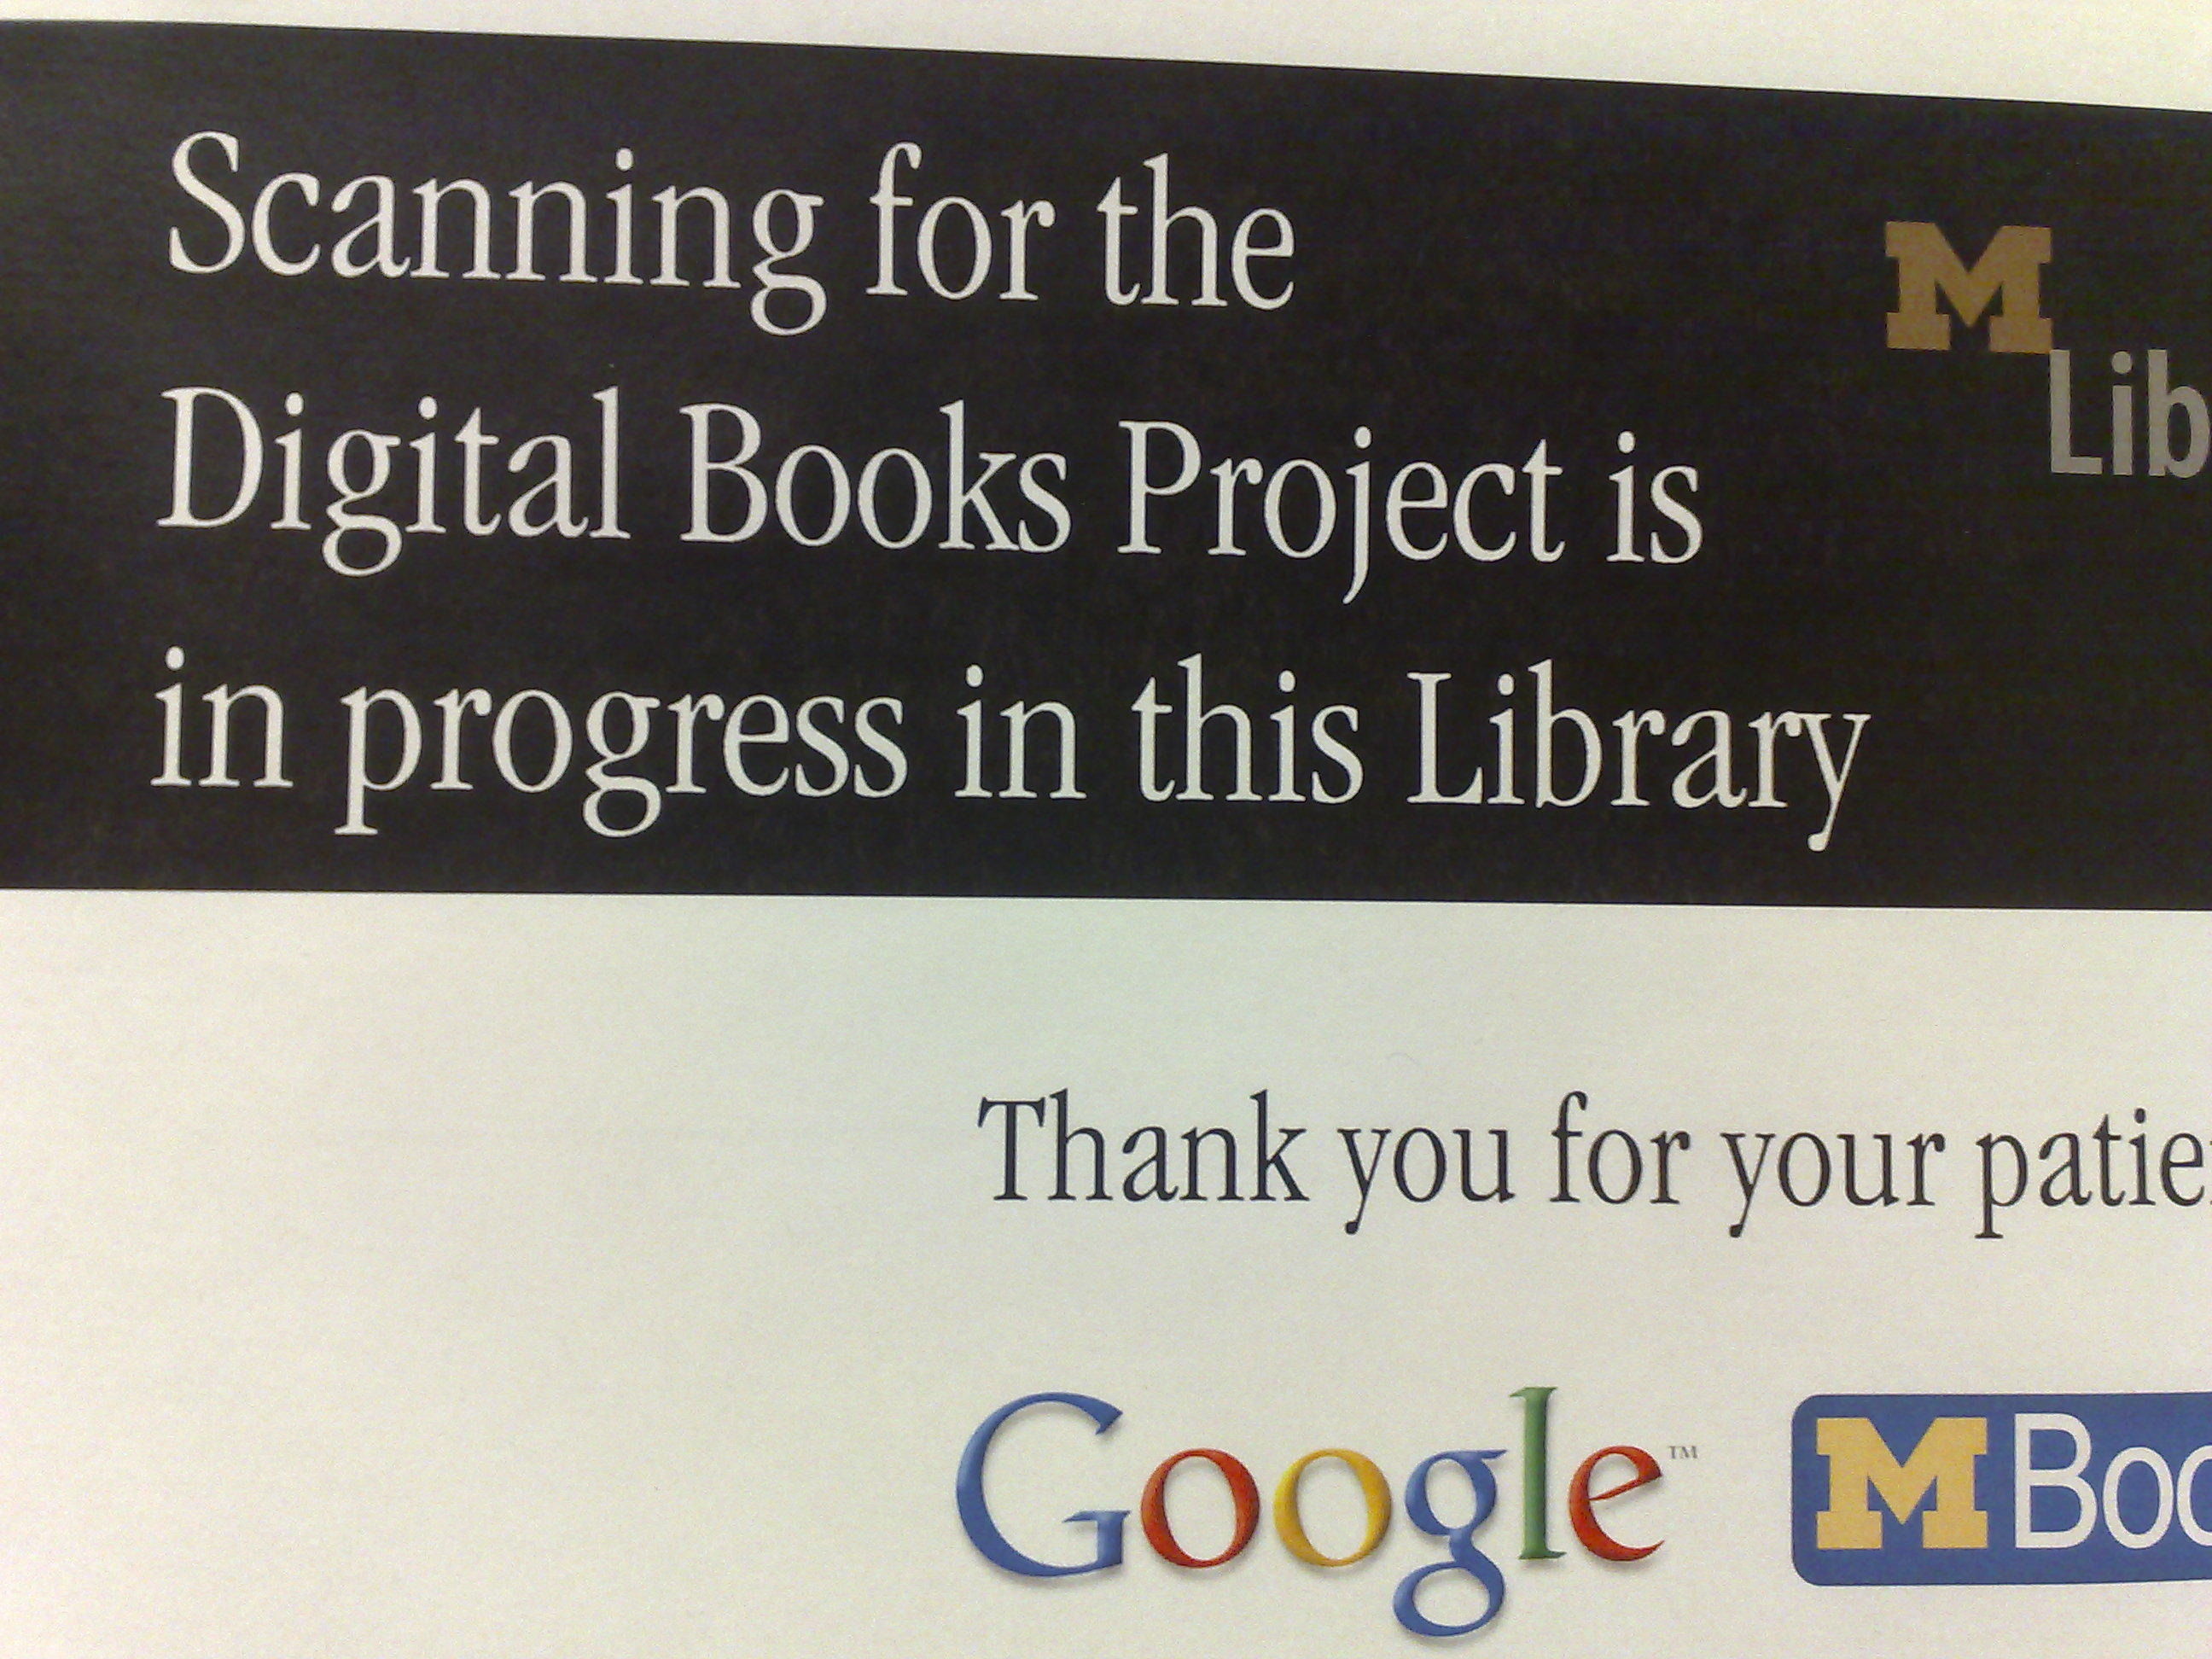 Google Digitization signs are all over libraries at The University of Michigan. (Credit: Andrew Turner)